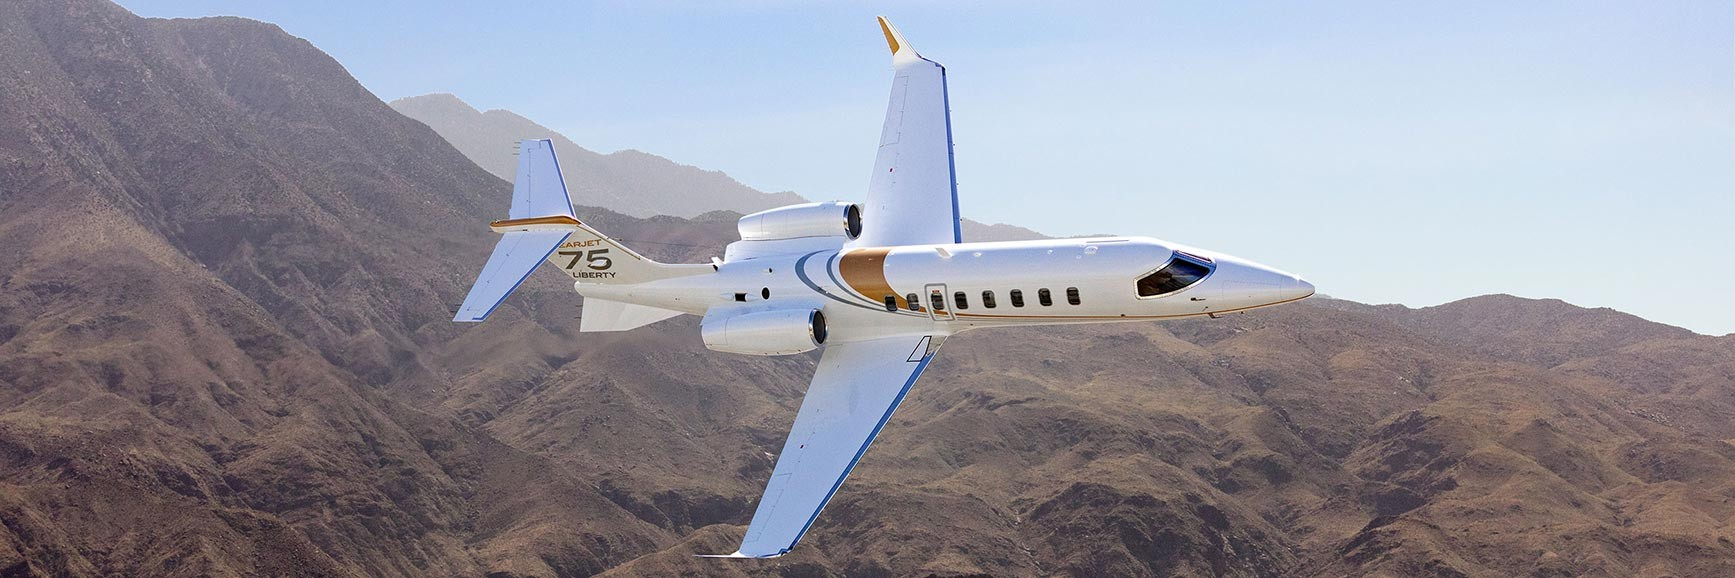 Learjet 75 Liberty - Leading operating costs, Learjet performance